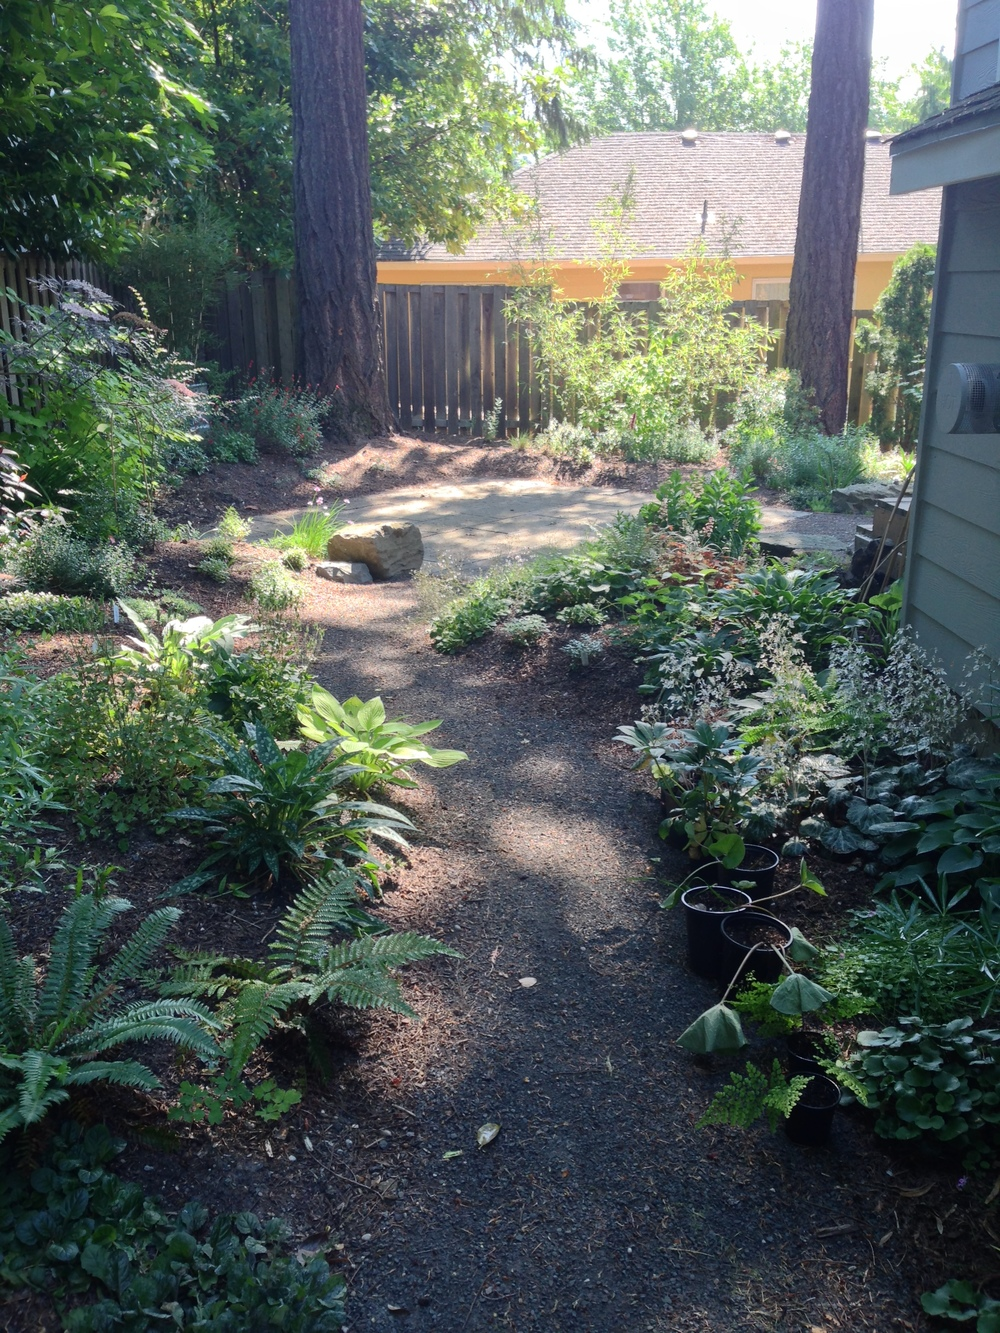 Myers t 2015-05-29 09.49.45h backlit path patio----.jpg